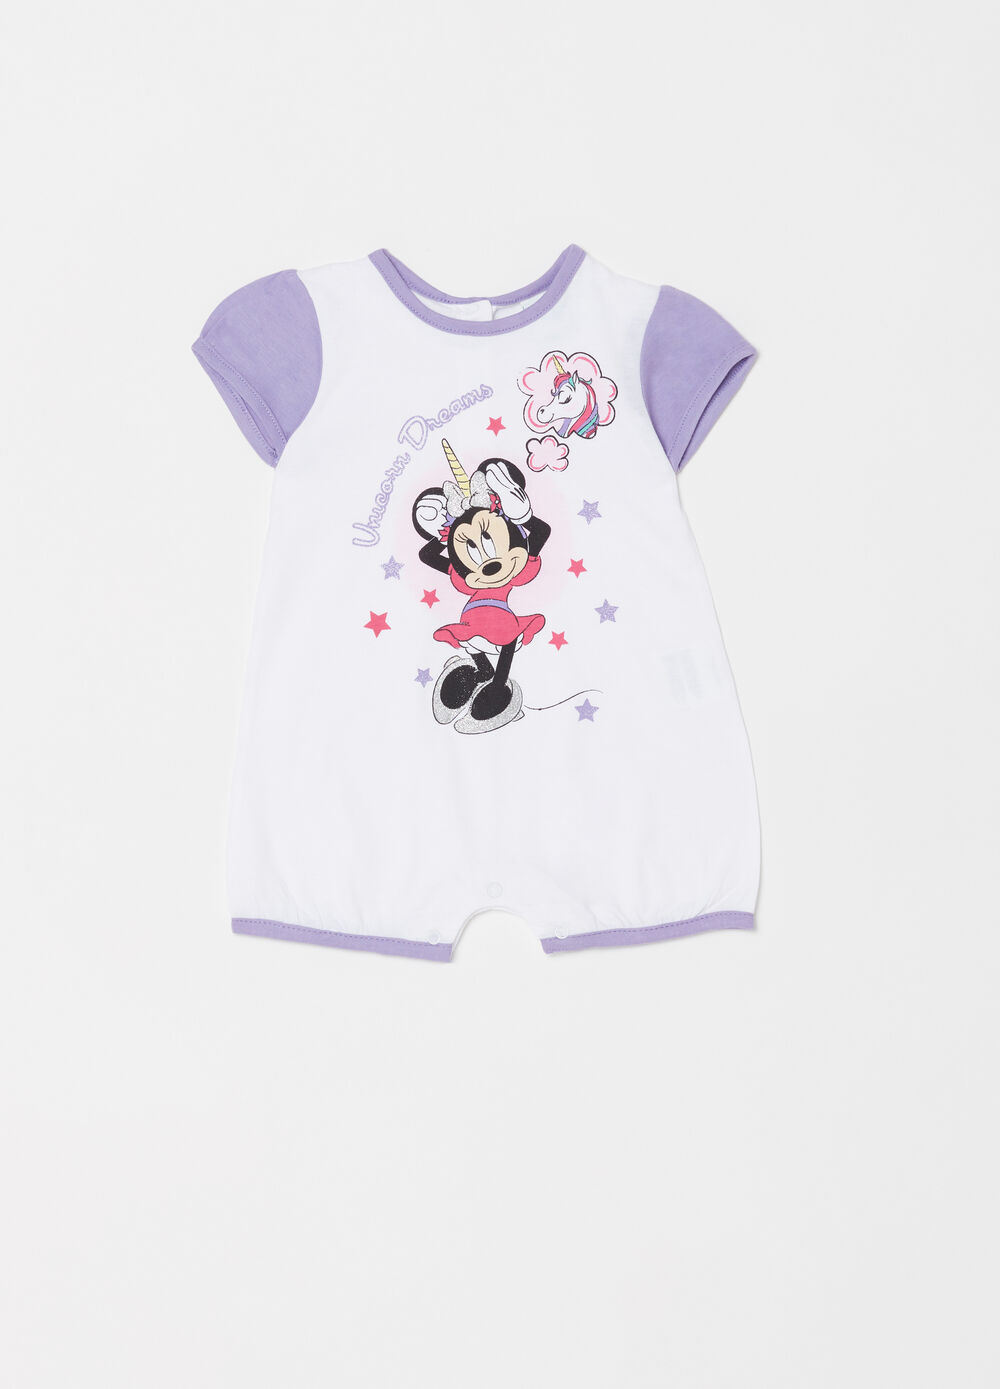 Disney Baby Minnie Mouse romper suit with short sleeves